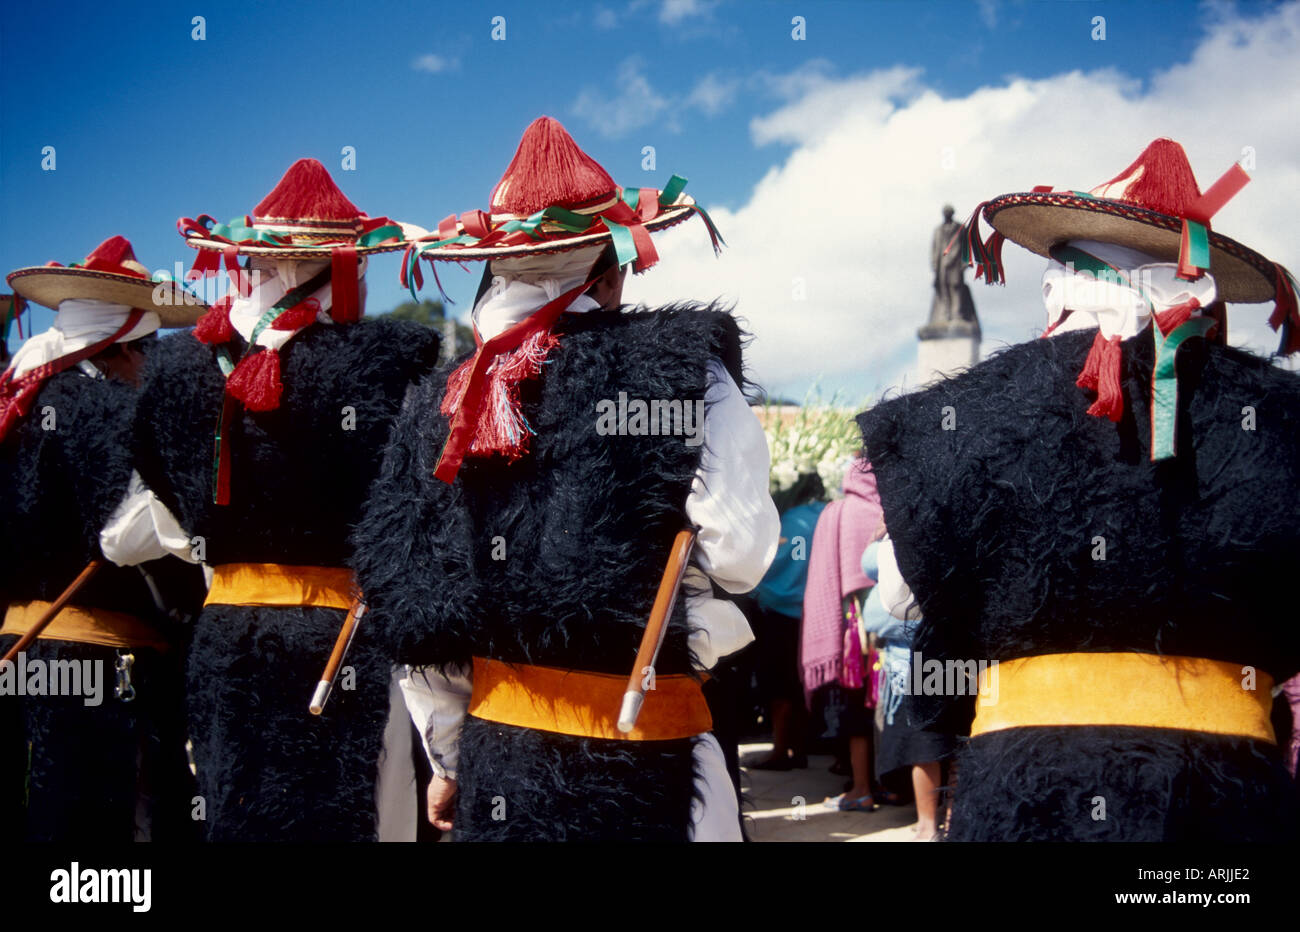 Indio Town Leaders In Traditional Clothing Costumes During Christmas Celebrations San Juan Chamula Chiapas Mexico